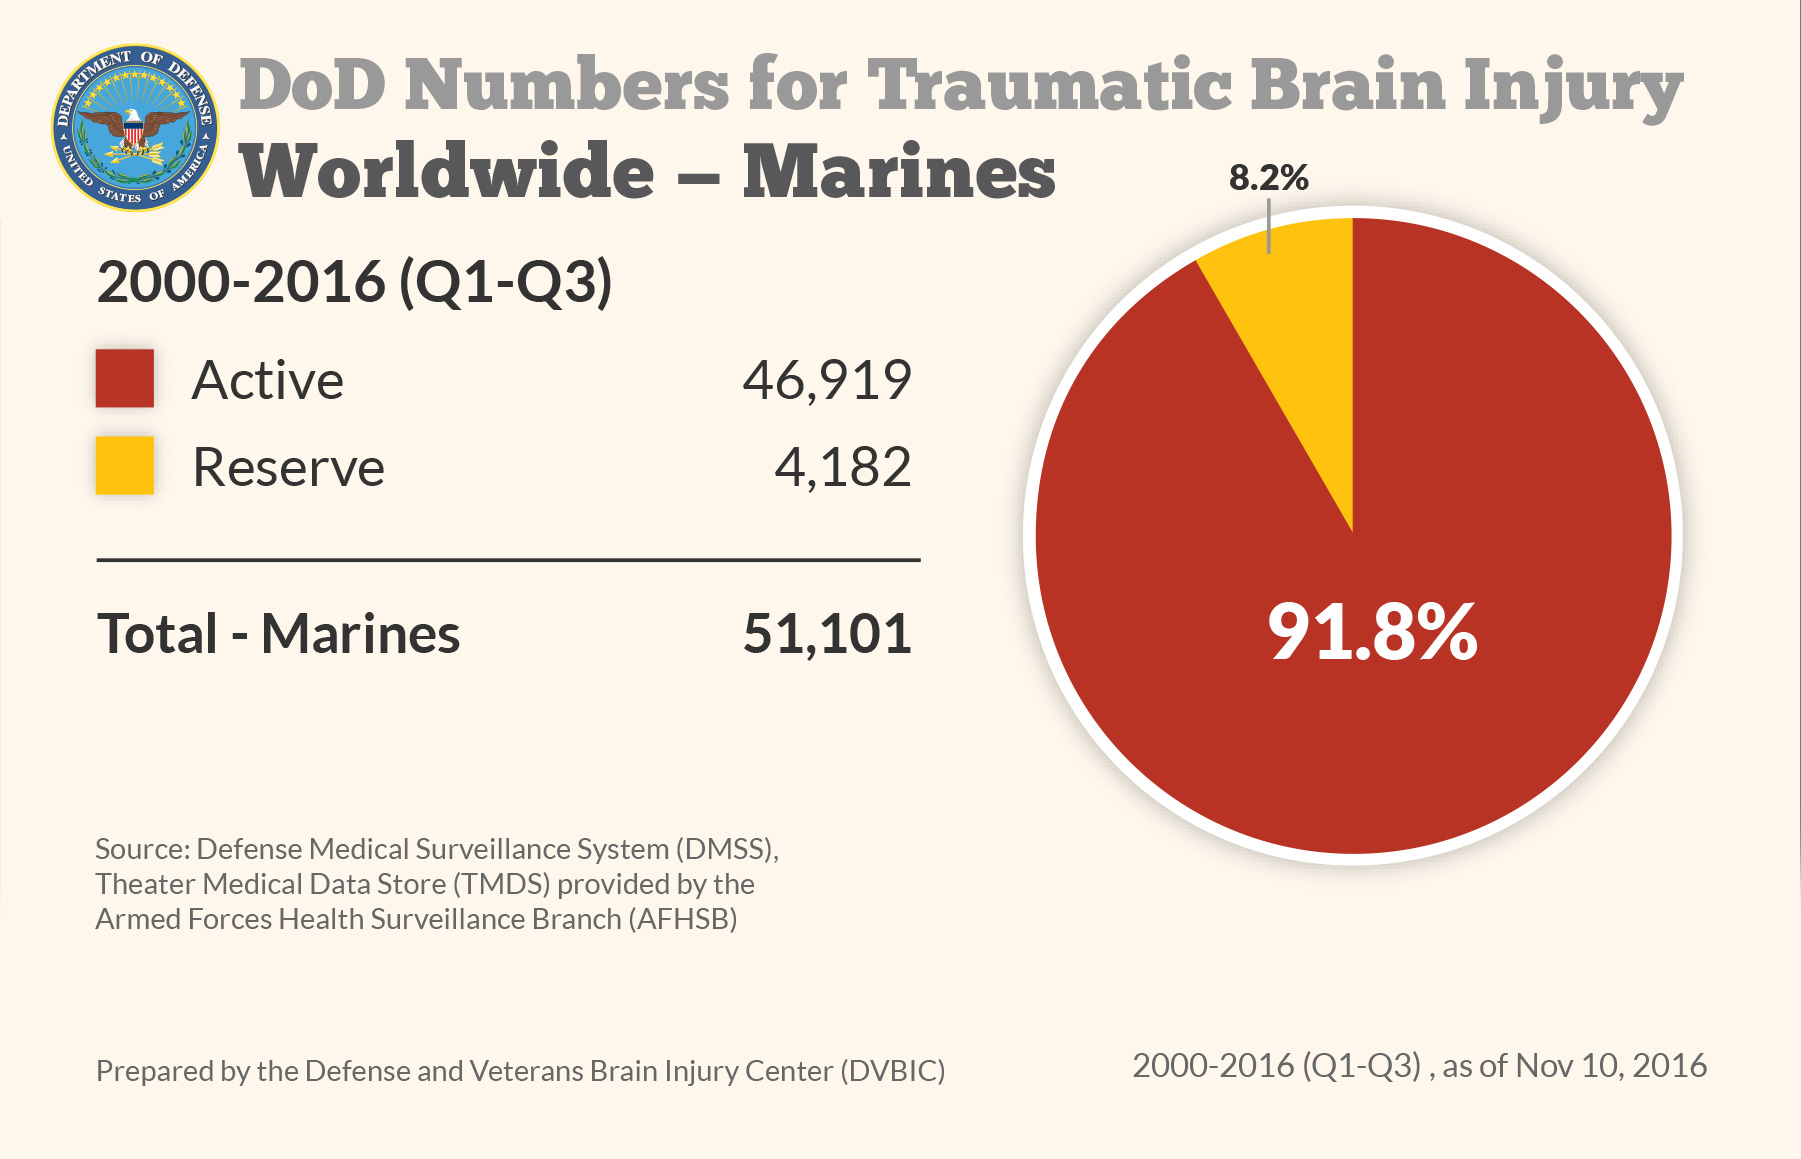 DoD Numbers for Traumatic Brain Injury Worldwide - Marines